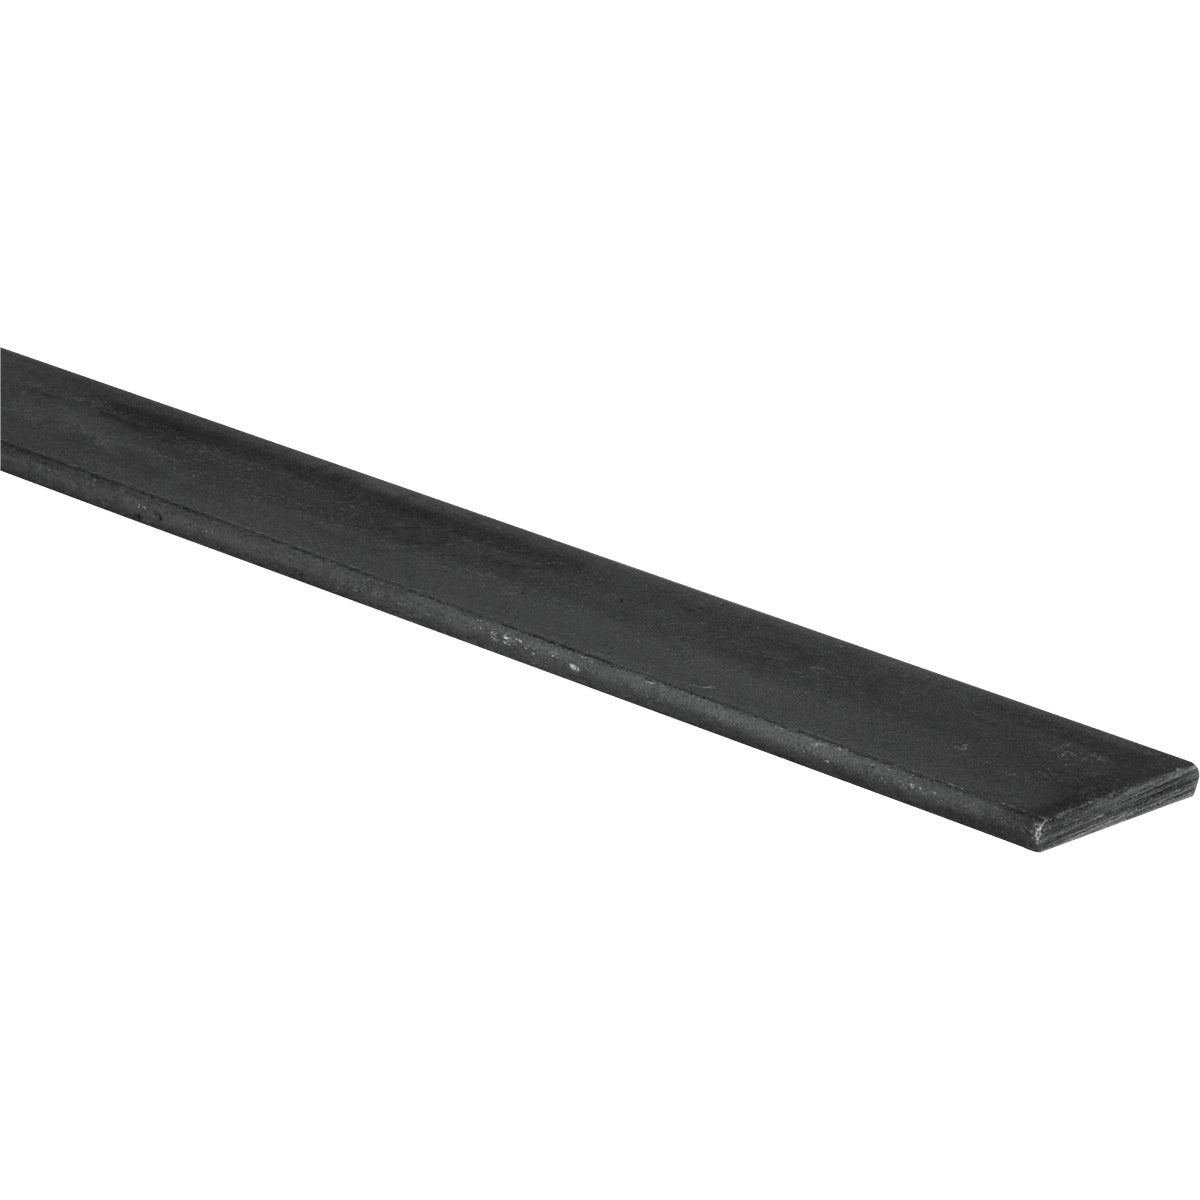 3/16X1-1/2X3'HR FLAT BAR - N316190 by National Mfg Co